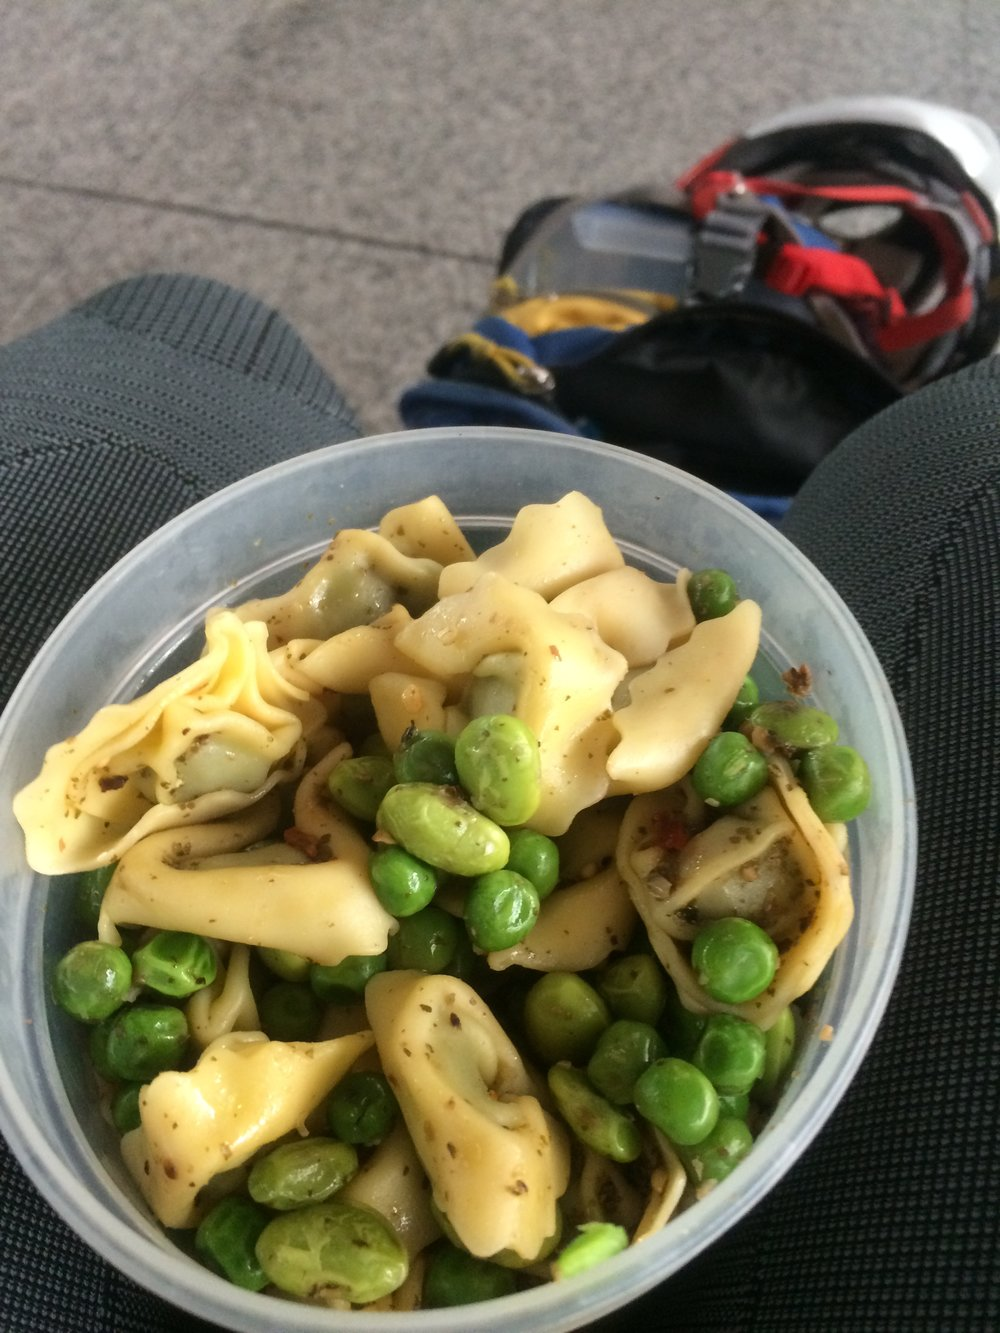 Travel meal... spinach tortellini w/ edamame and peas